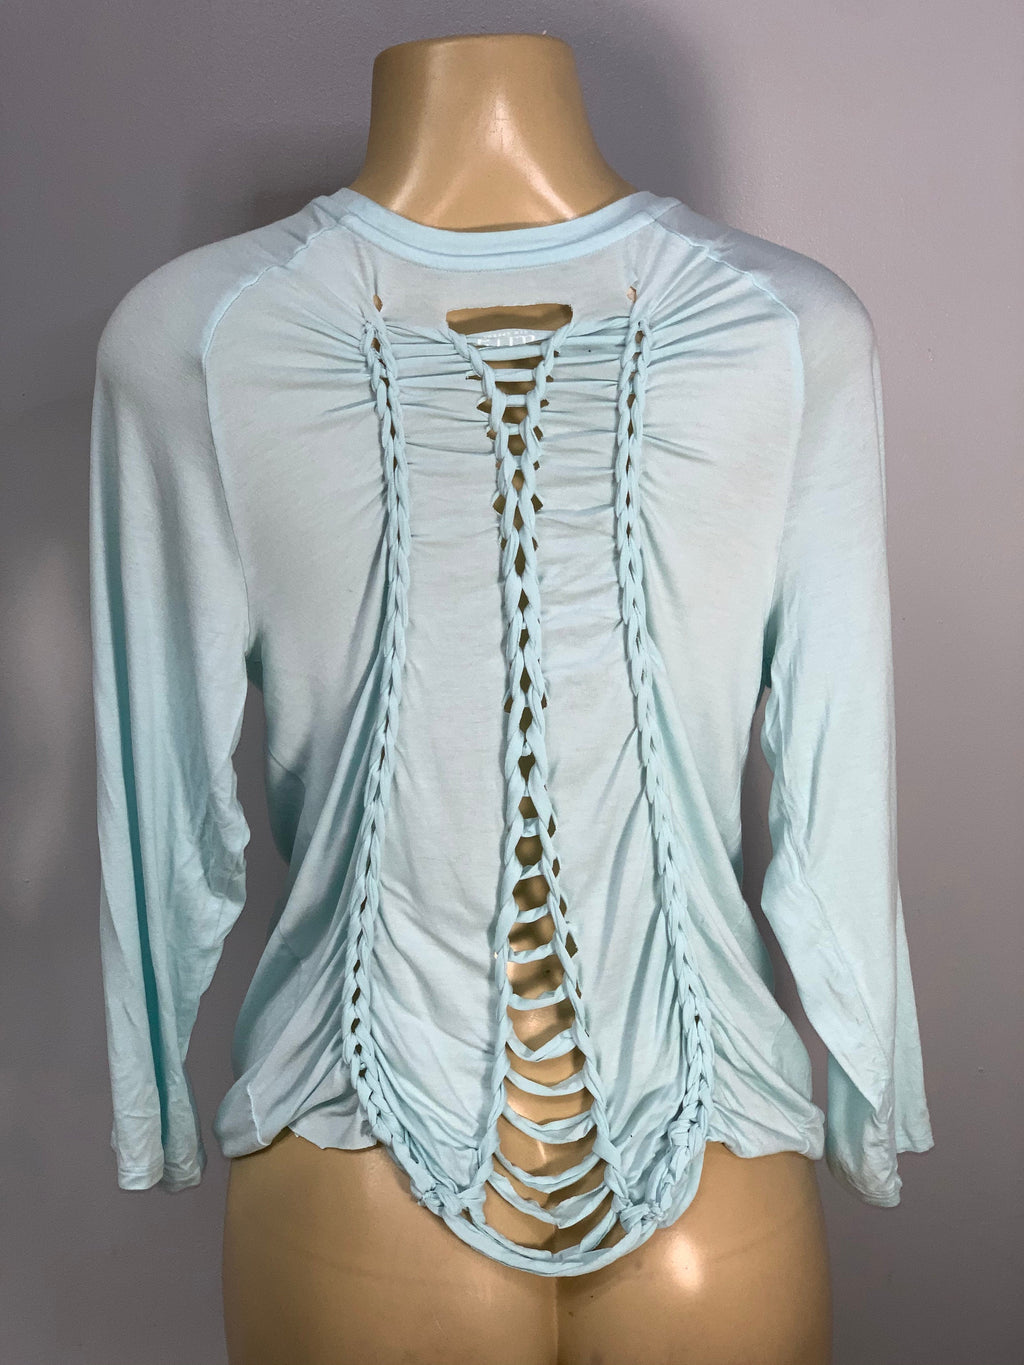 Sky Blue Long Sleeve Cut and Woven by SnipTease